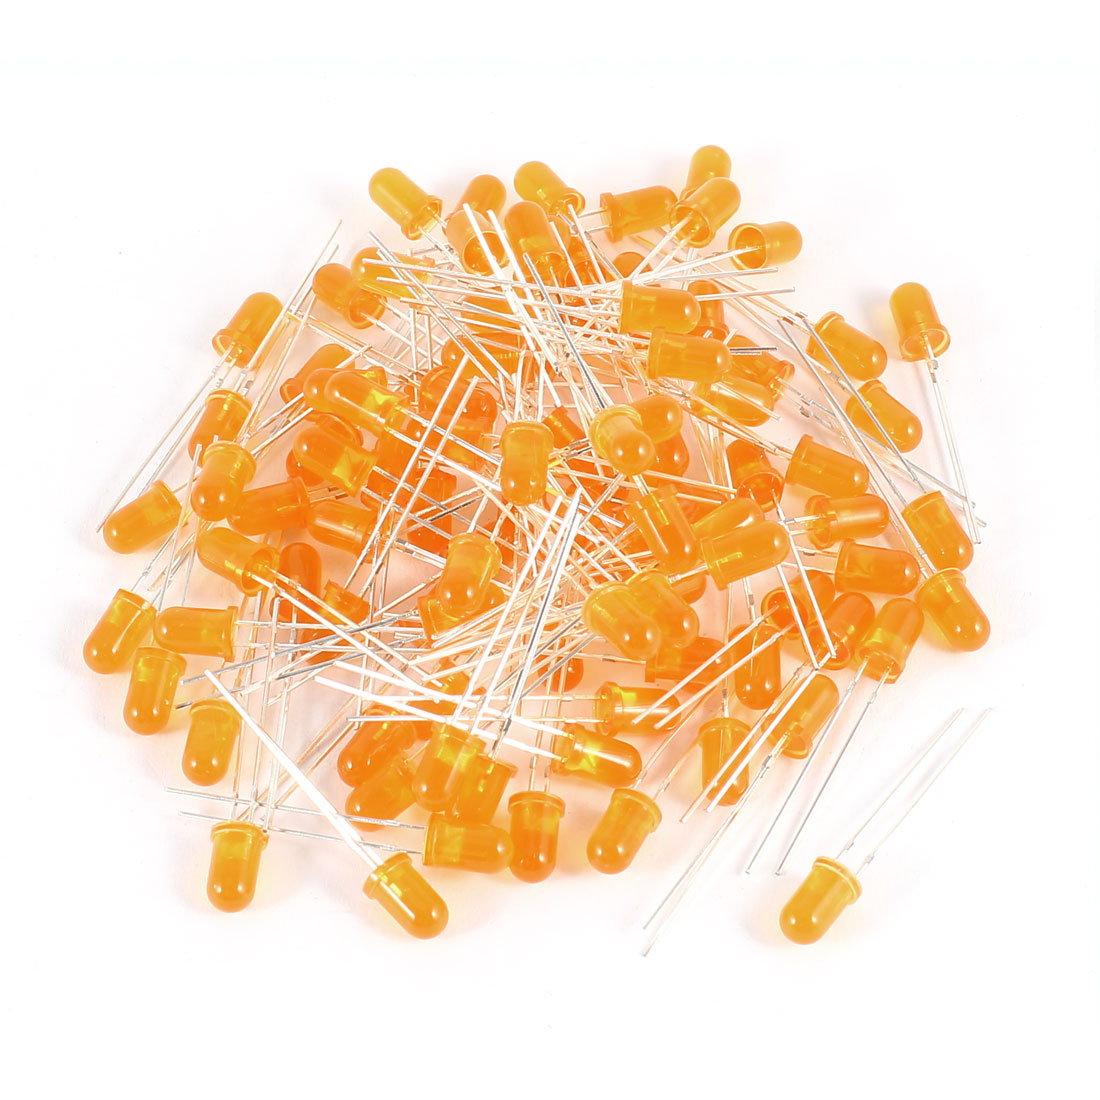 100 Pcs 5mm Round Head Orange LED Light Emitting Diode